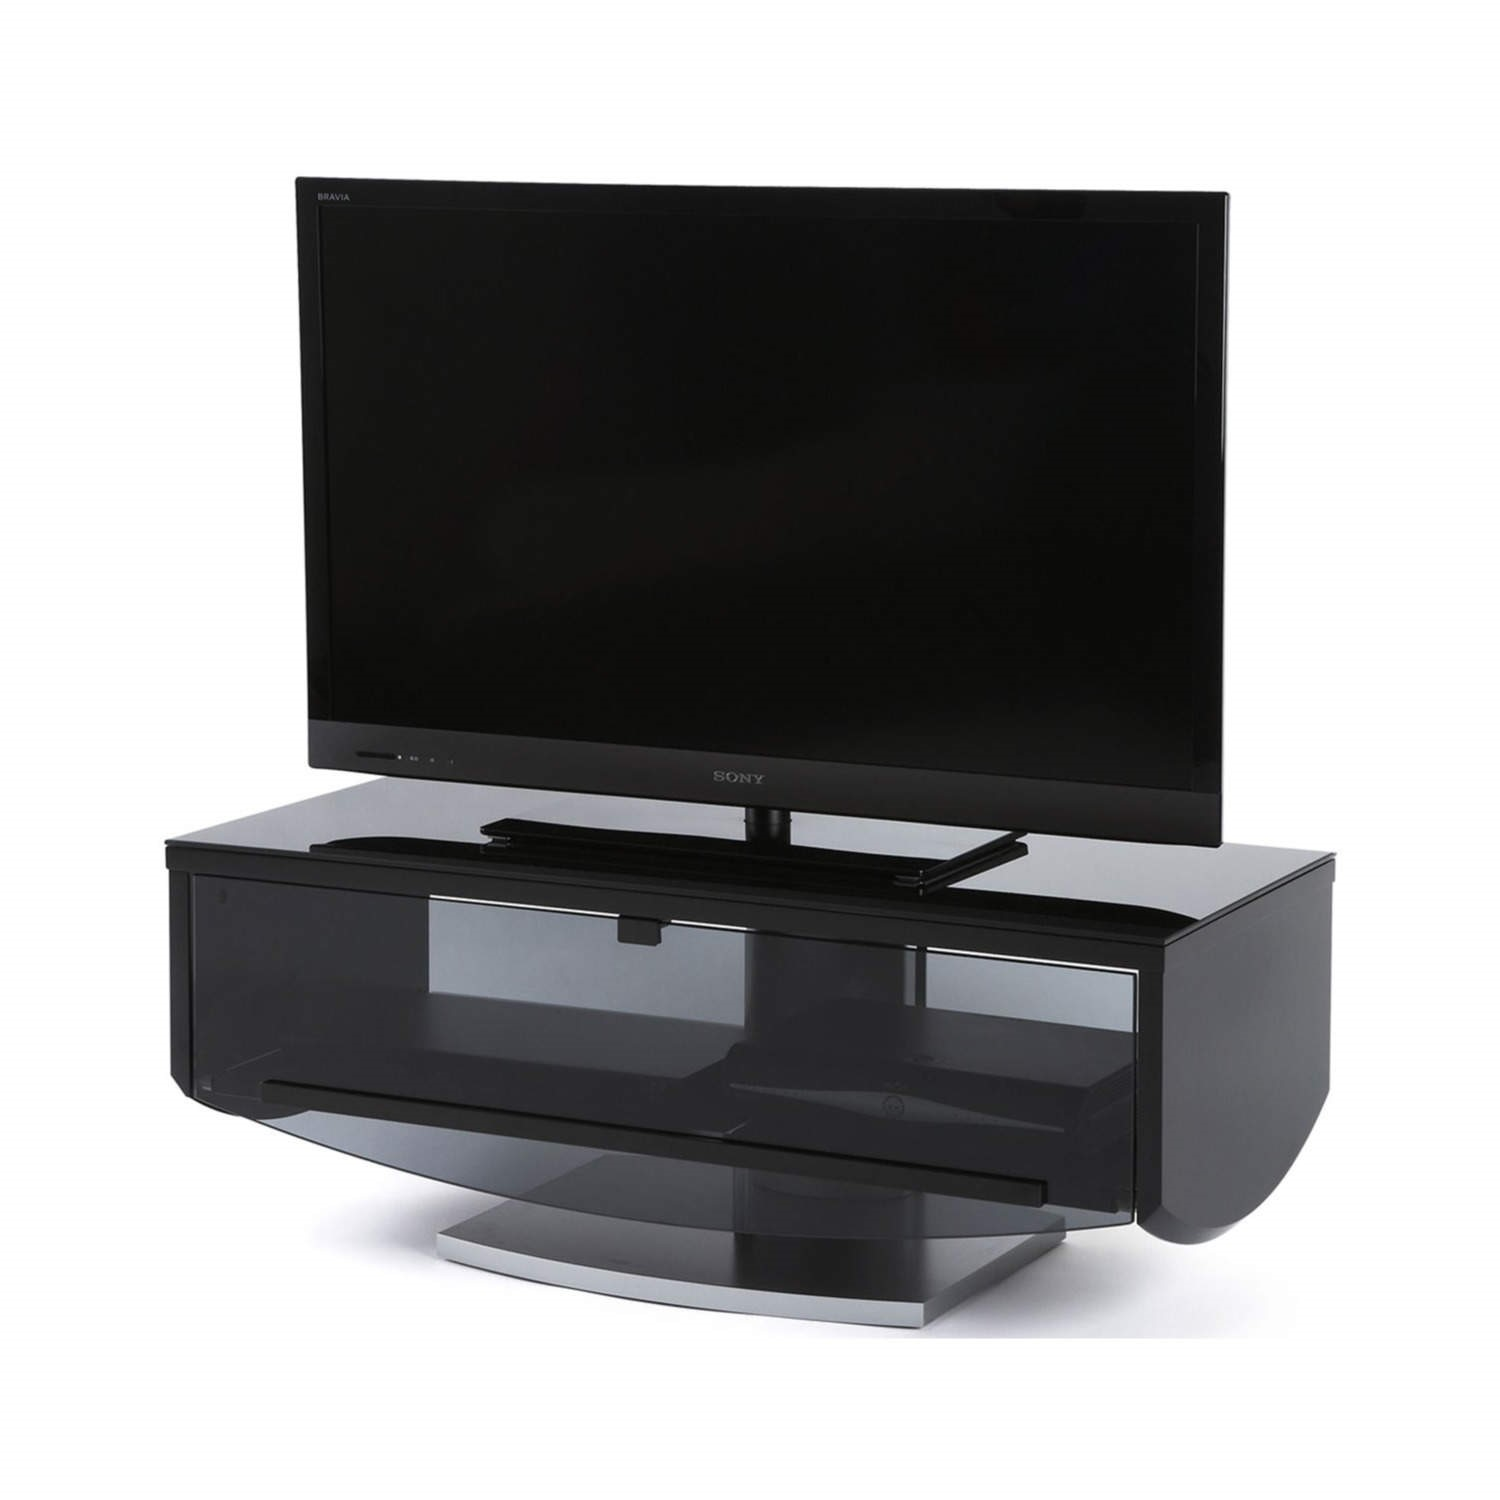 buy online bf7d8 f9bb0 Off The Wall Eclipse 1000 Black TV Cabinet - Up to 55 Inch